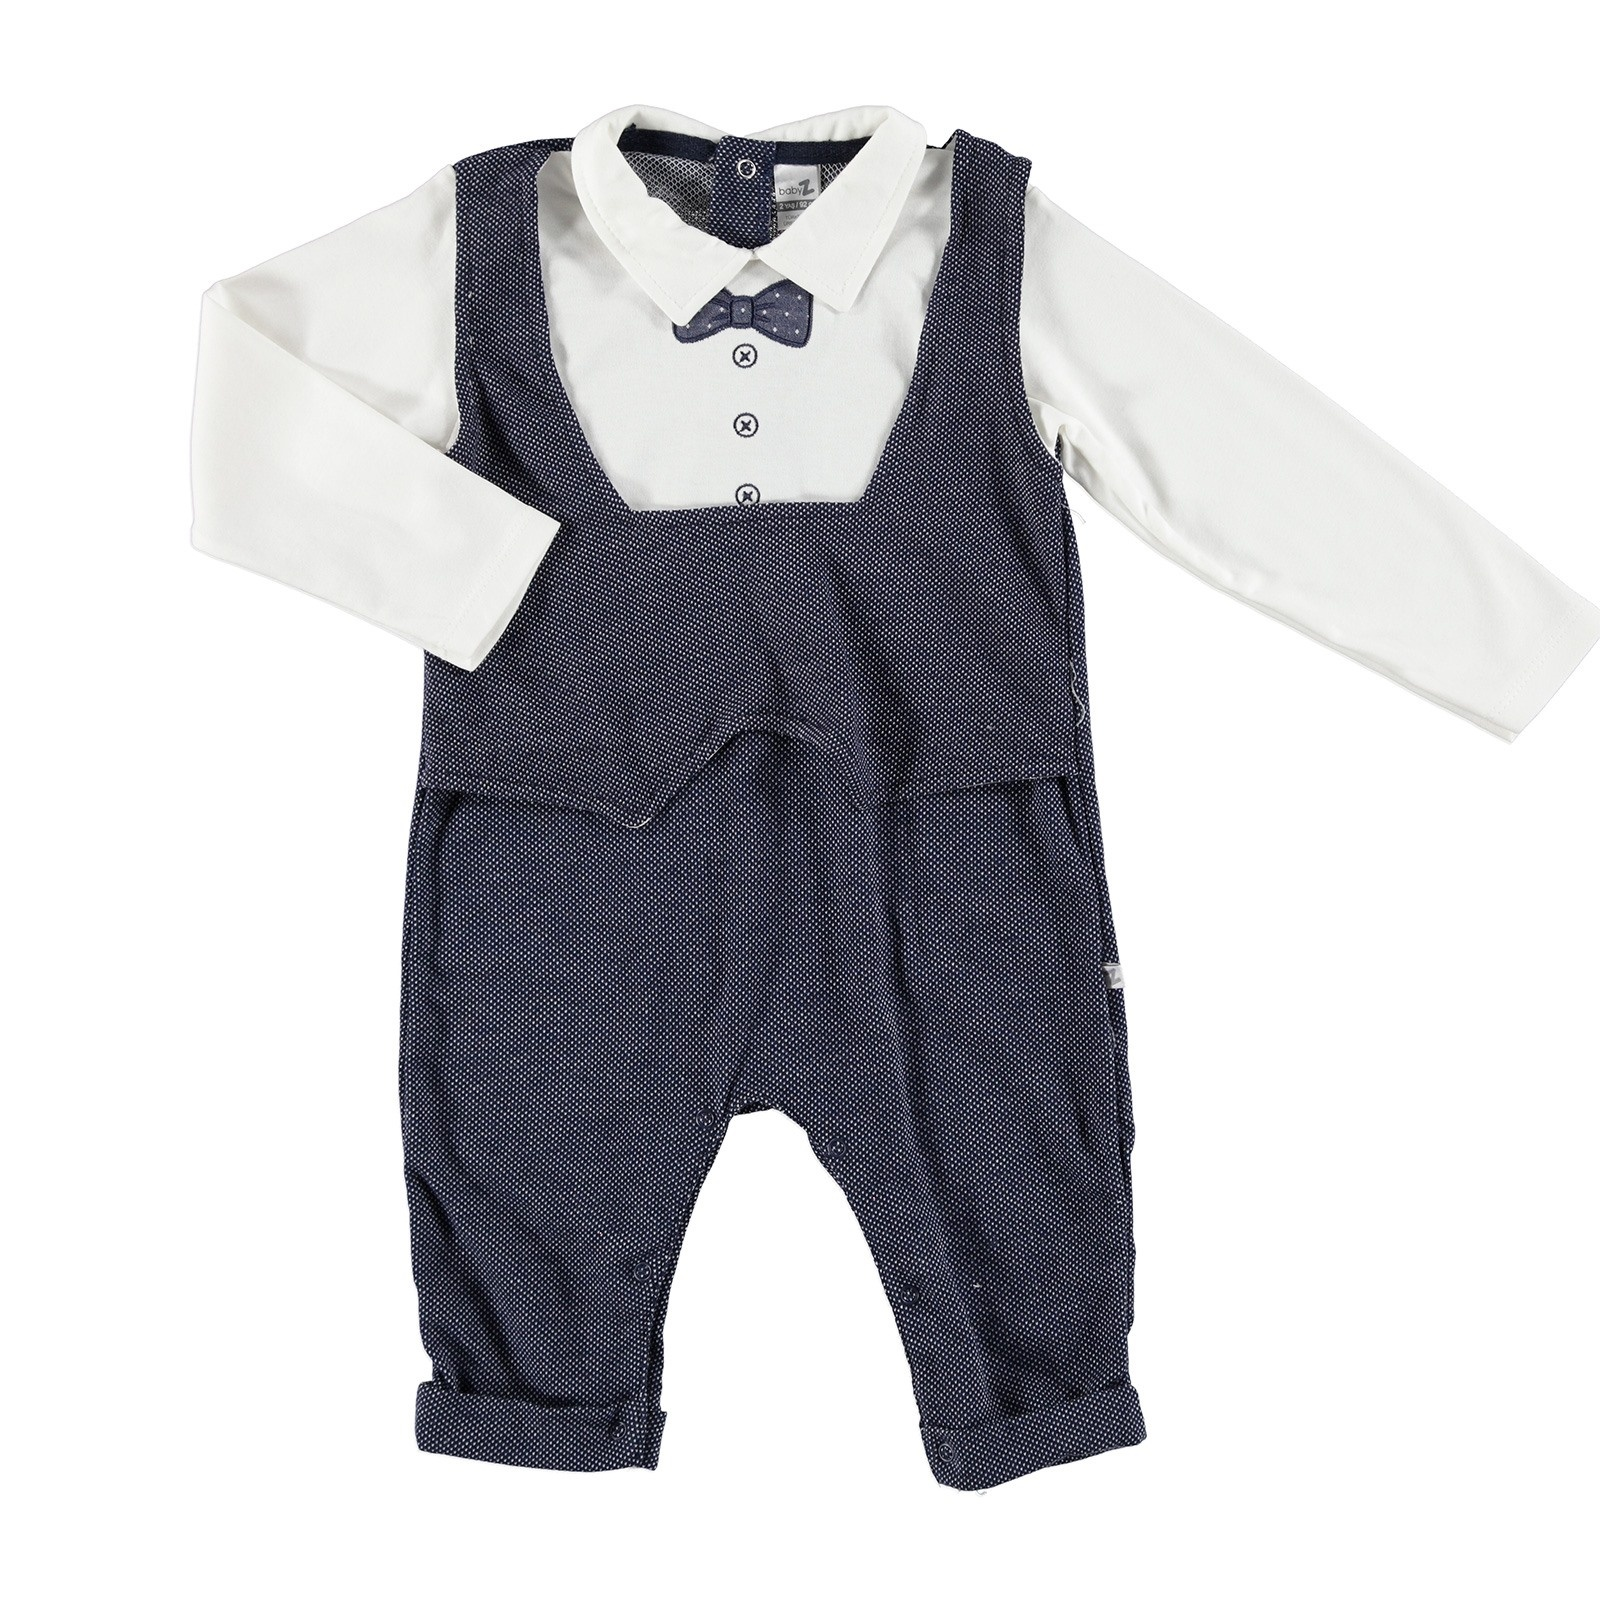 Ebebek BabyZ Bowtie Embroidered Baby Footless Romper